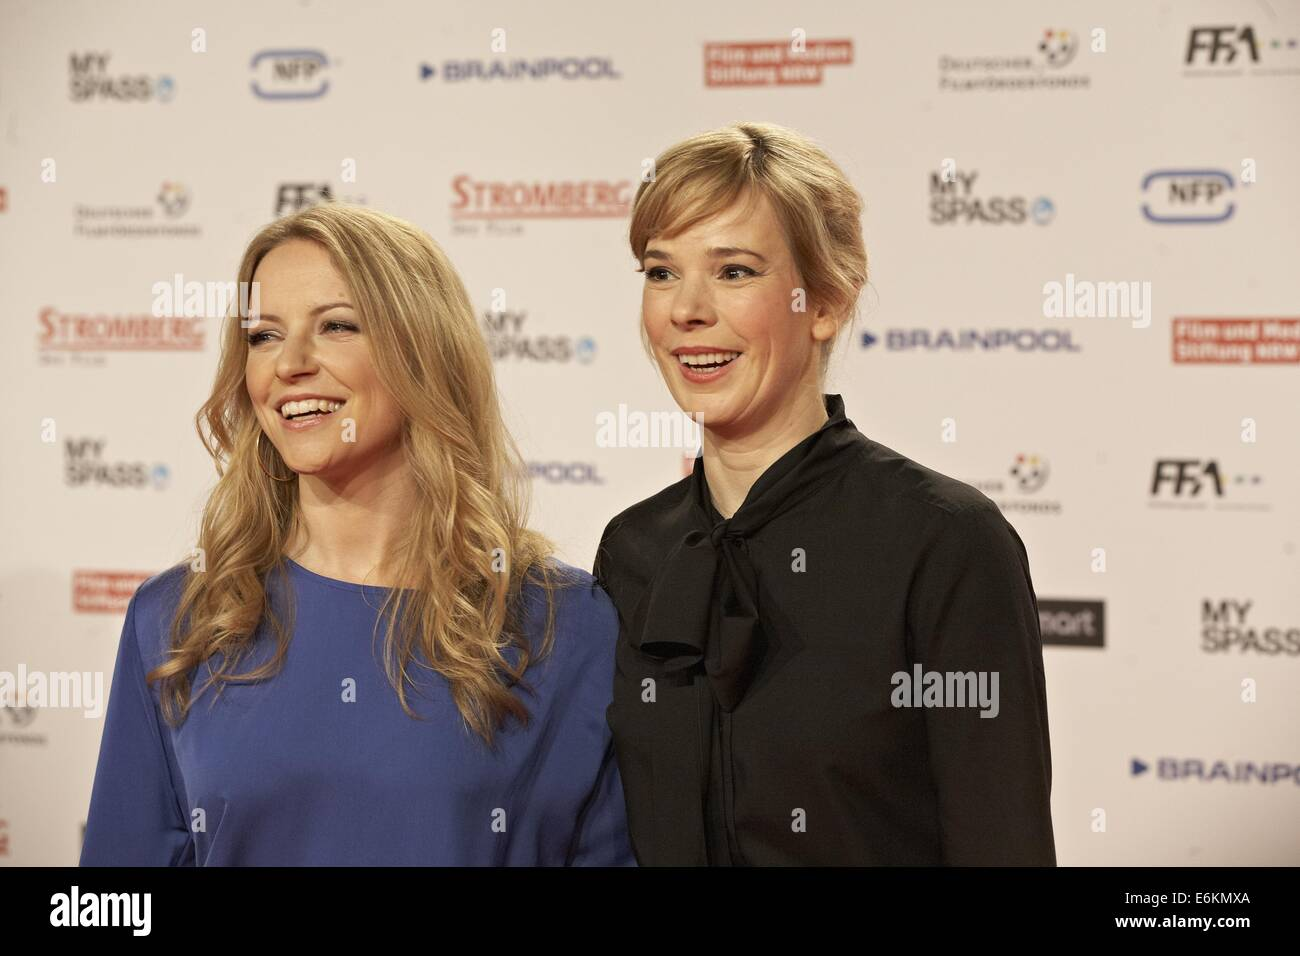 Premiere of 'Stromberg - Der Film' at Cinedom.  Featuring: Diana Staehly,Milena Dreißig Where: Cologne, Germany Stock Photo